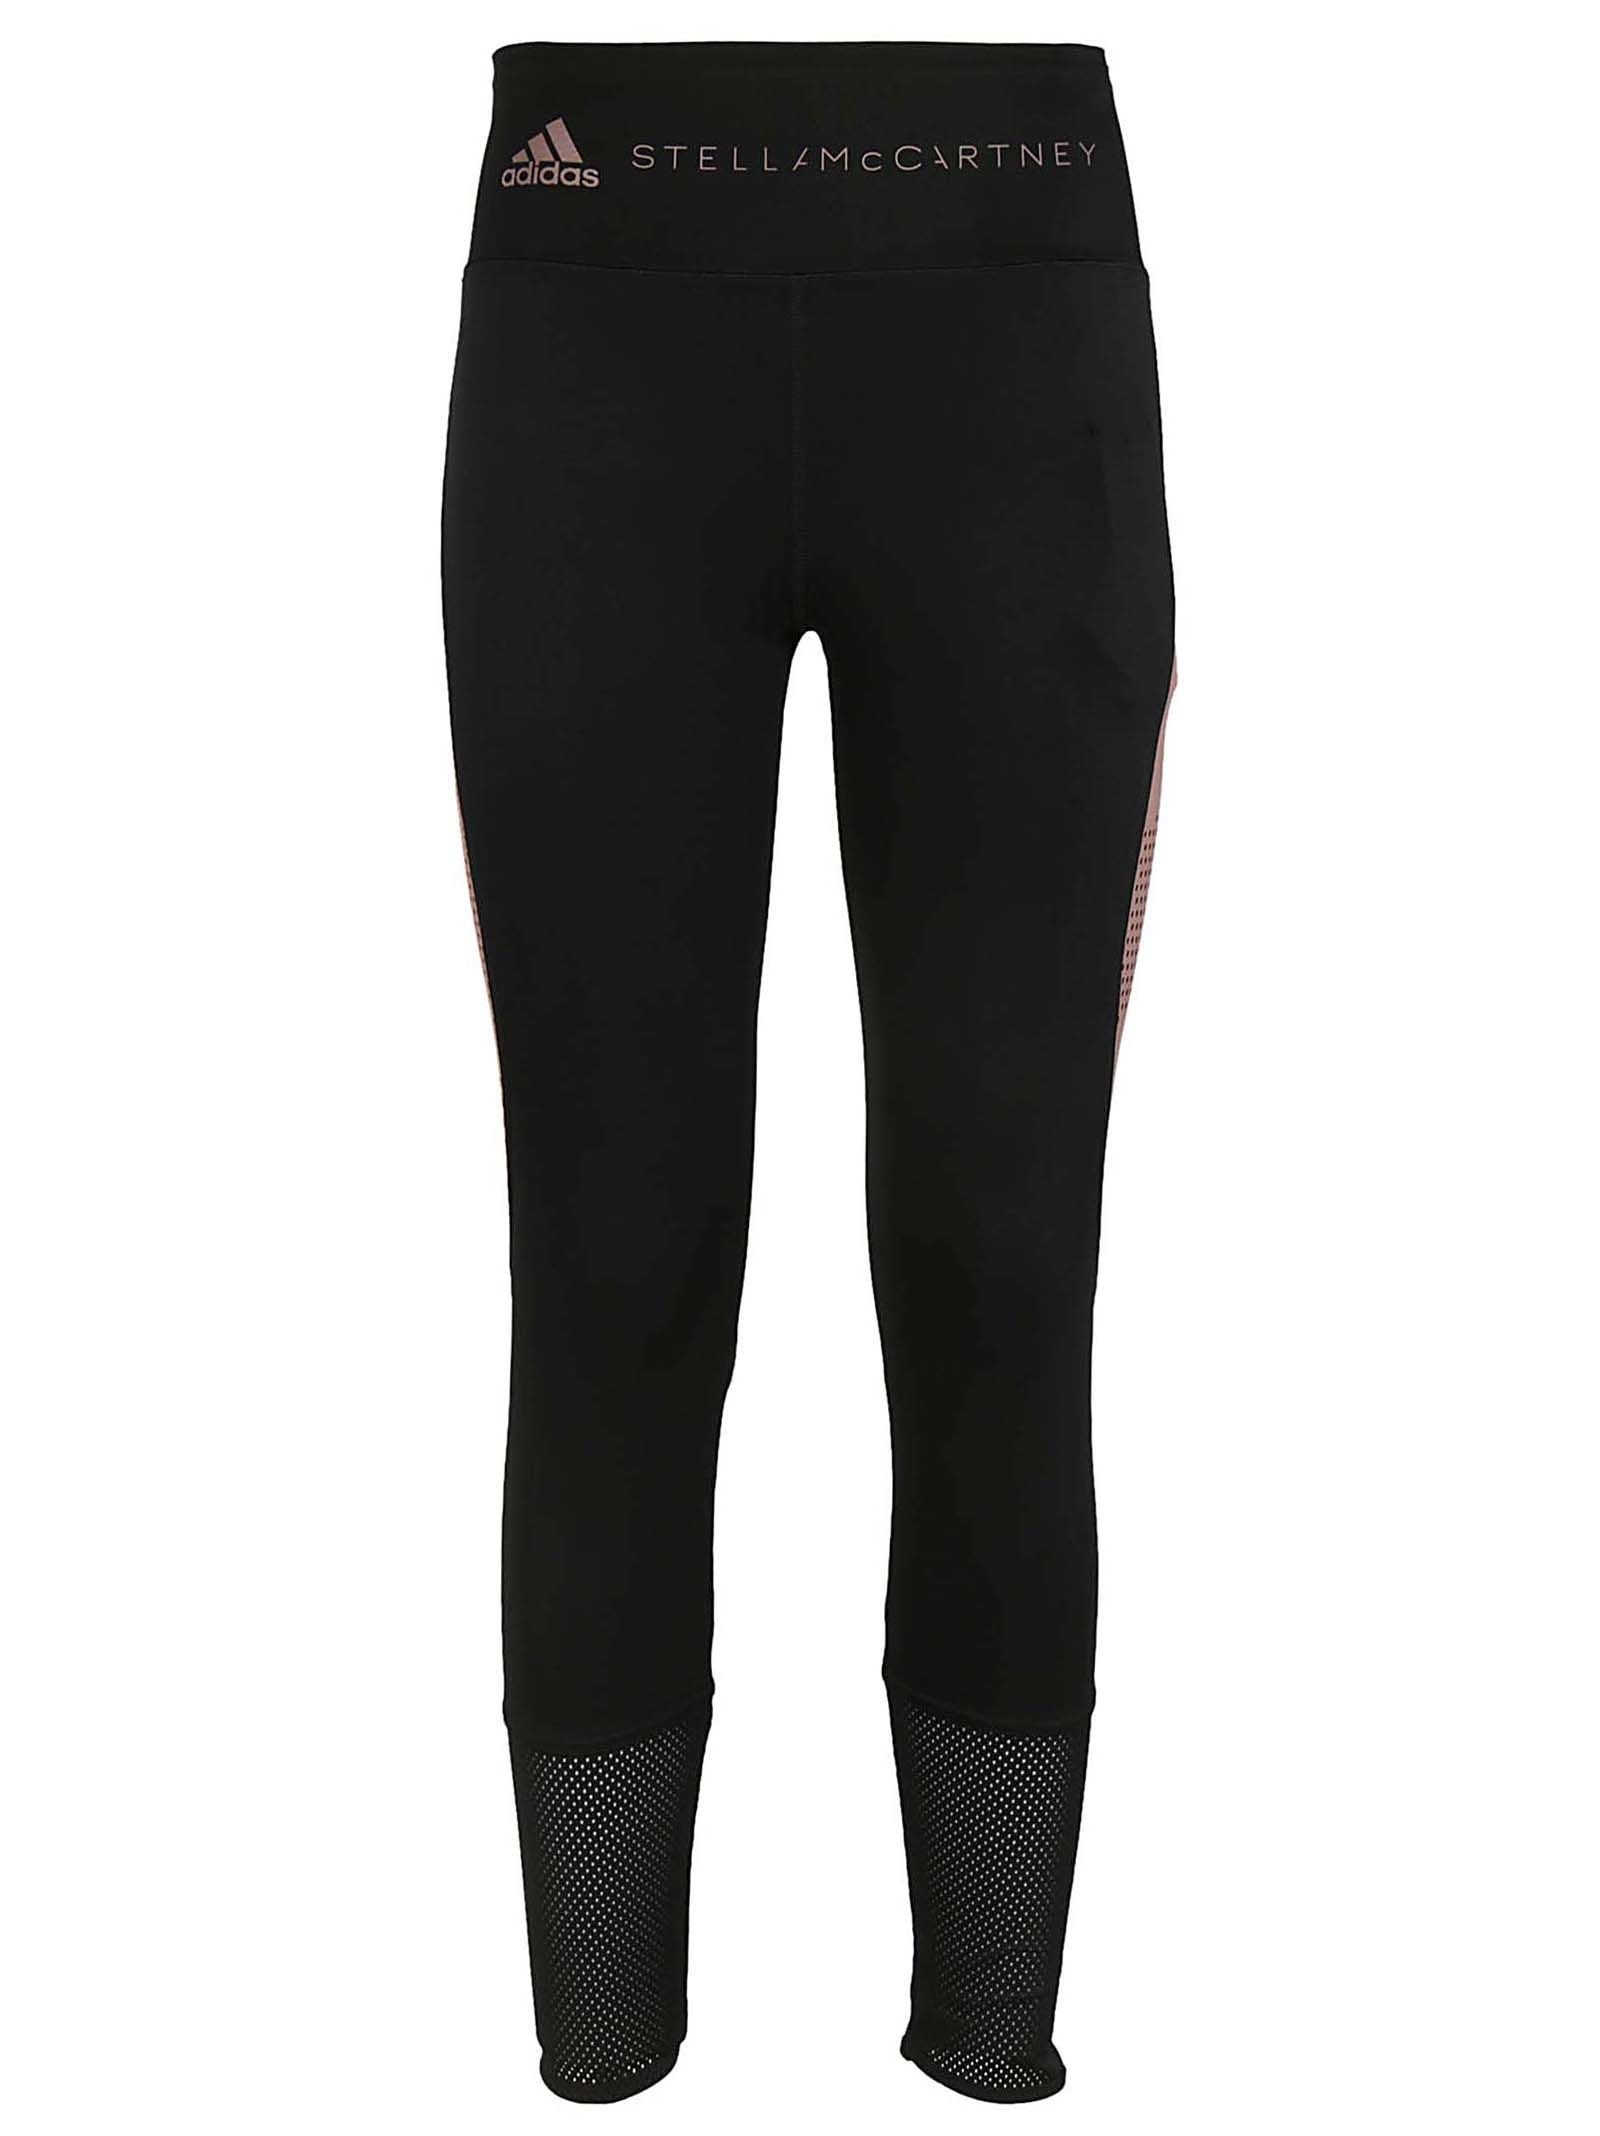 TRAINING EXCLUSIVE ULTIMATE TIGHTS from Italist.com